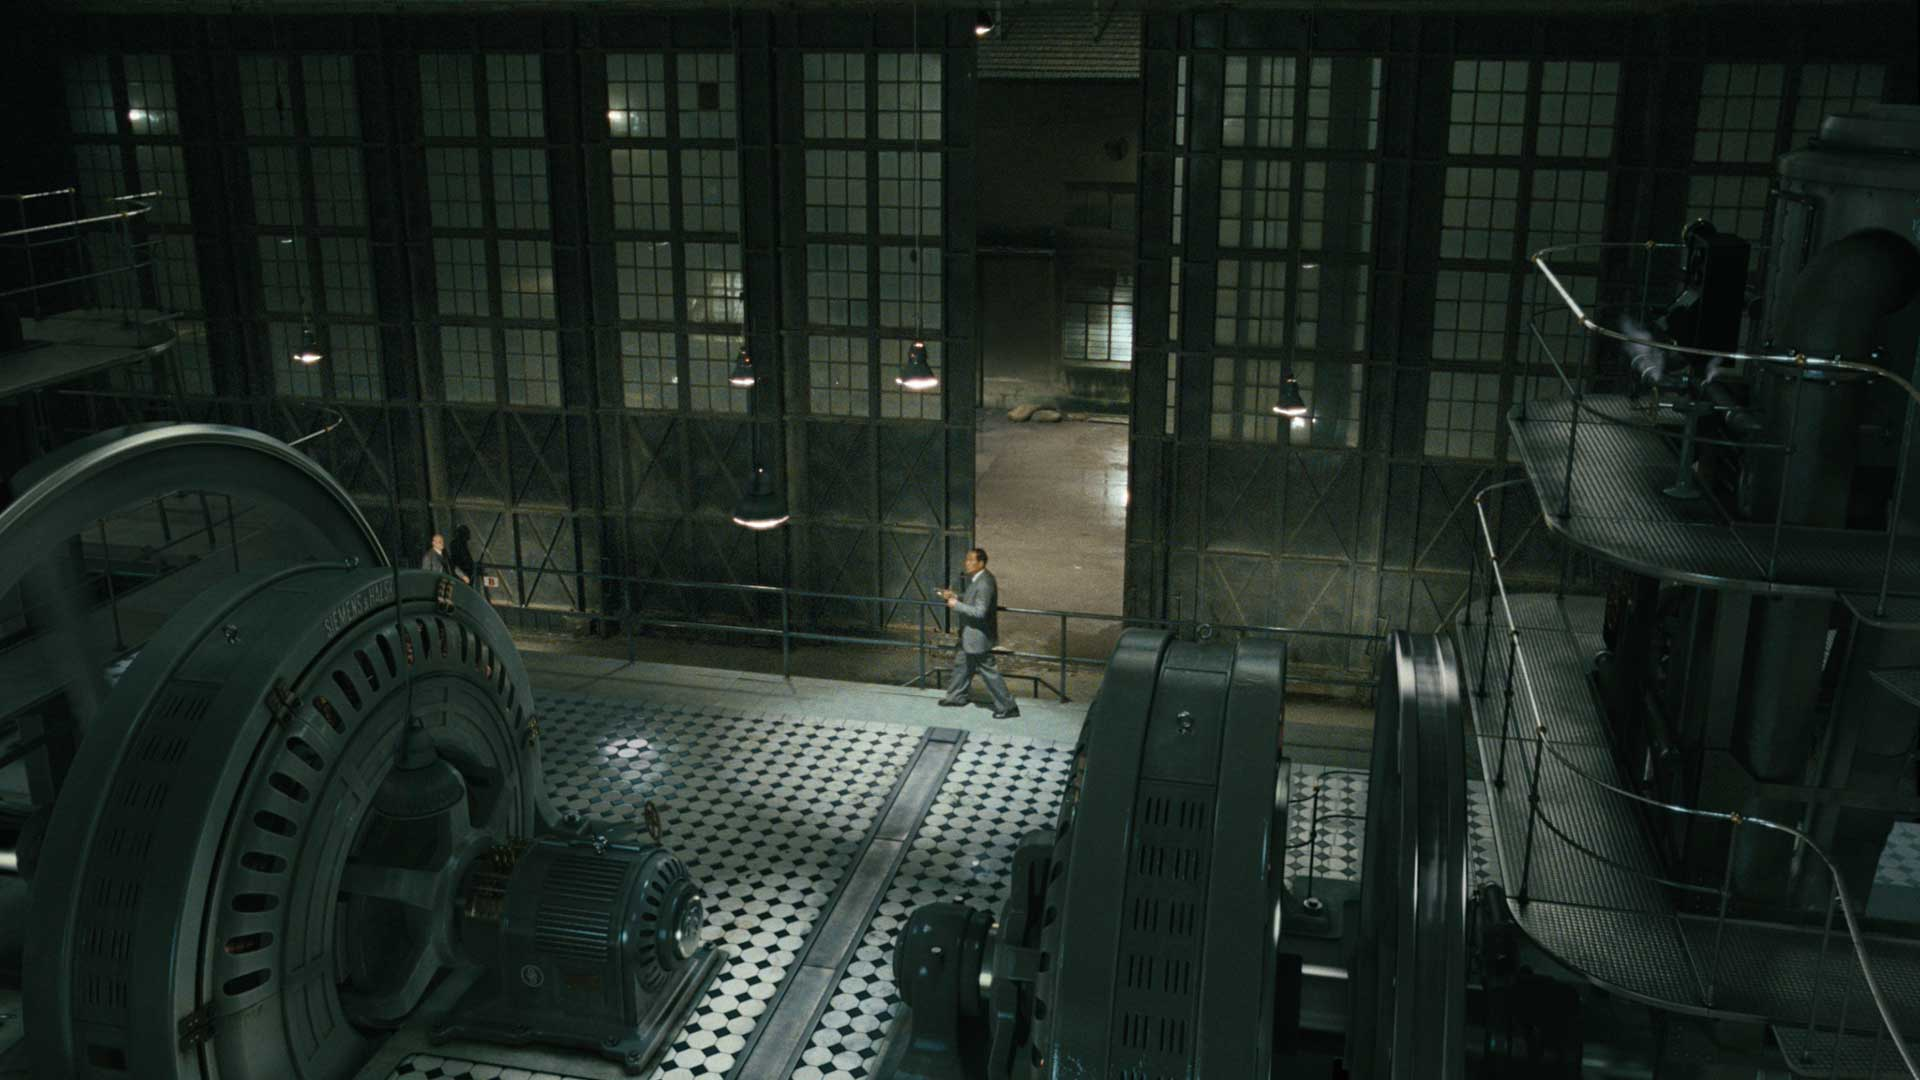 3D extended night scene inside the generator hall from the motion picture John Rabe